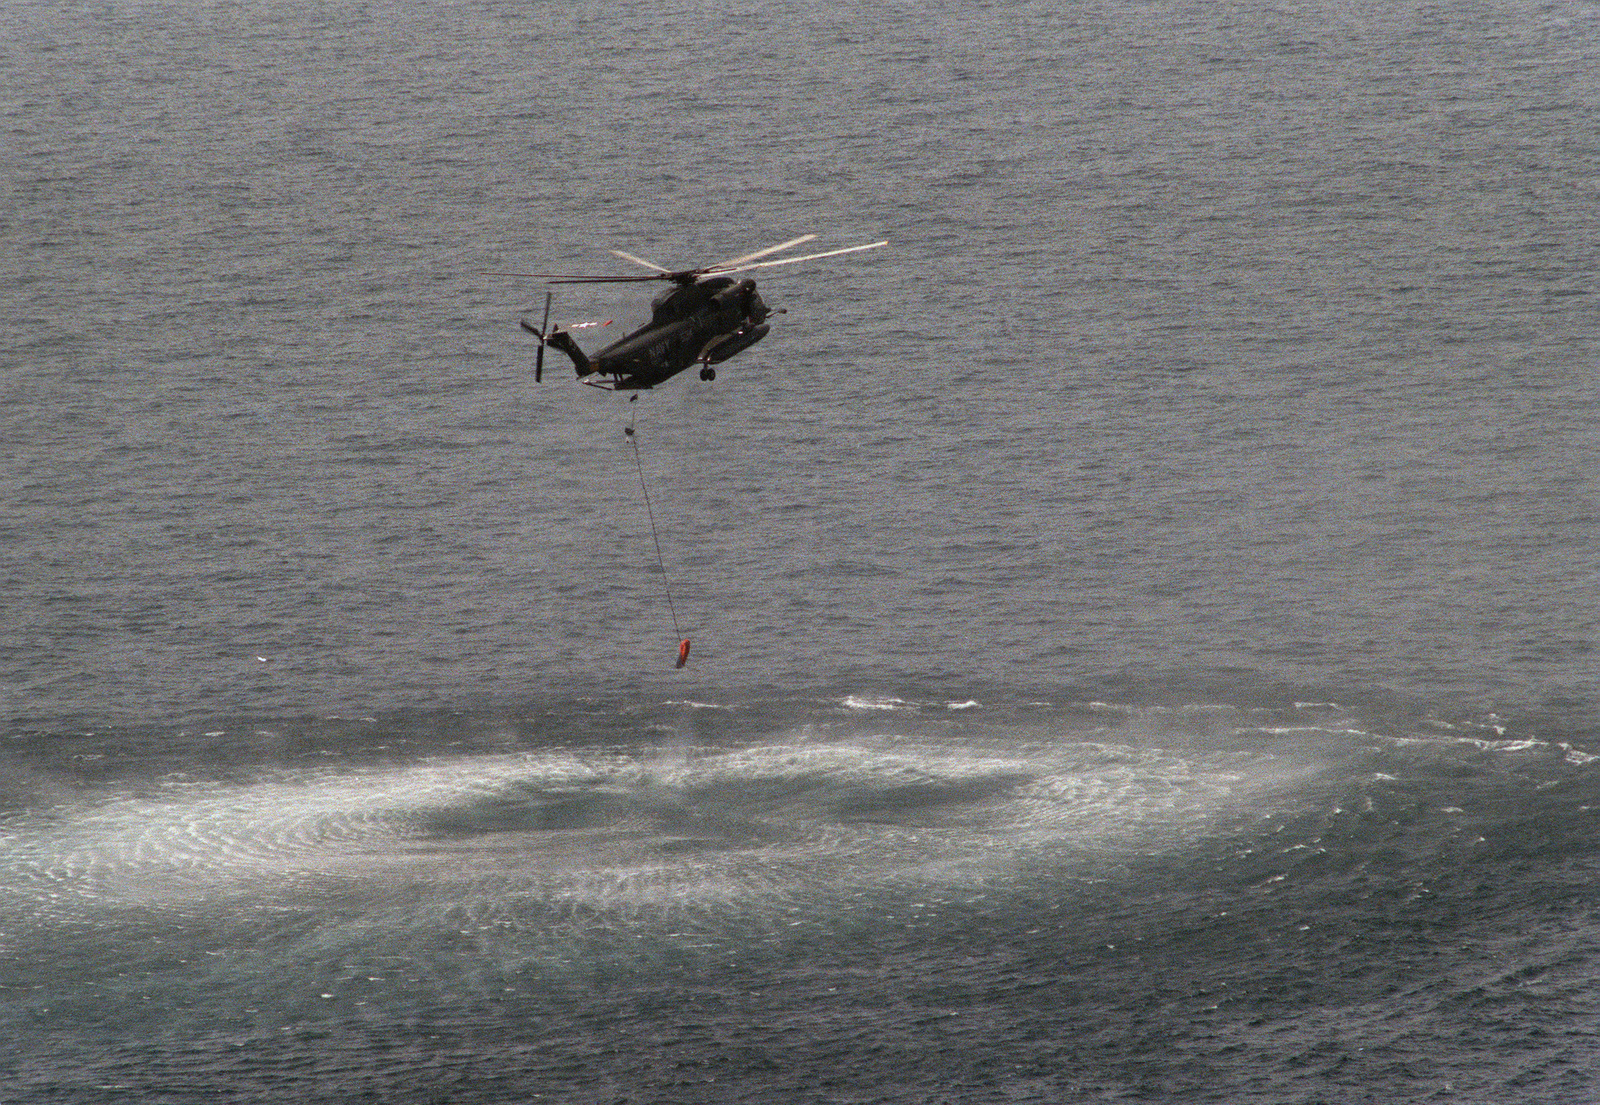 A Helicopter Mine Countermeasures Squadron 14 (HM 14) RH-53D Sea Stallion helicopter retrieves a float from the water during a minesweeping operation